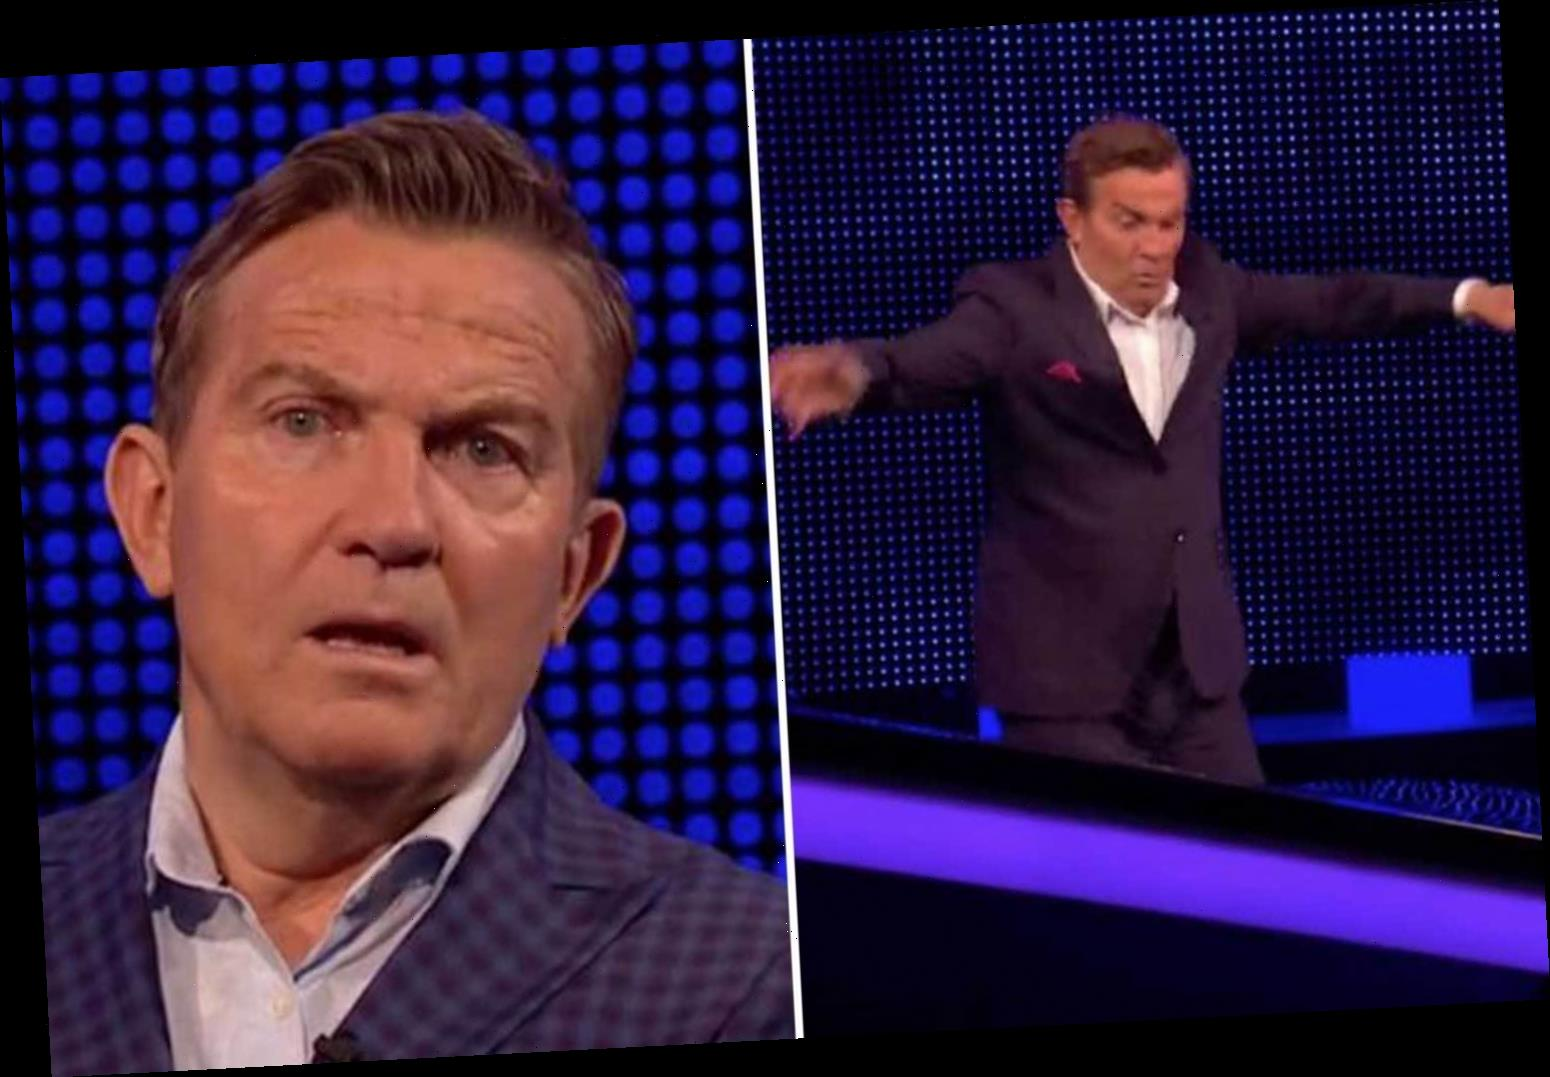 Bradley Walsh's most hilarious unseen bloopers – from his dirty jokes to falling off stage